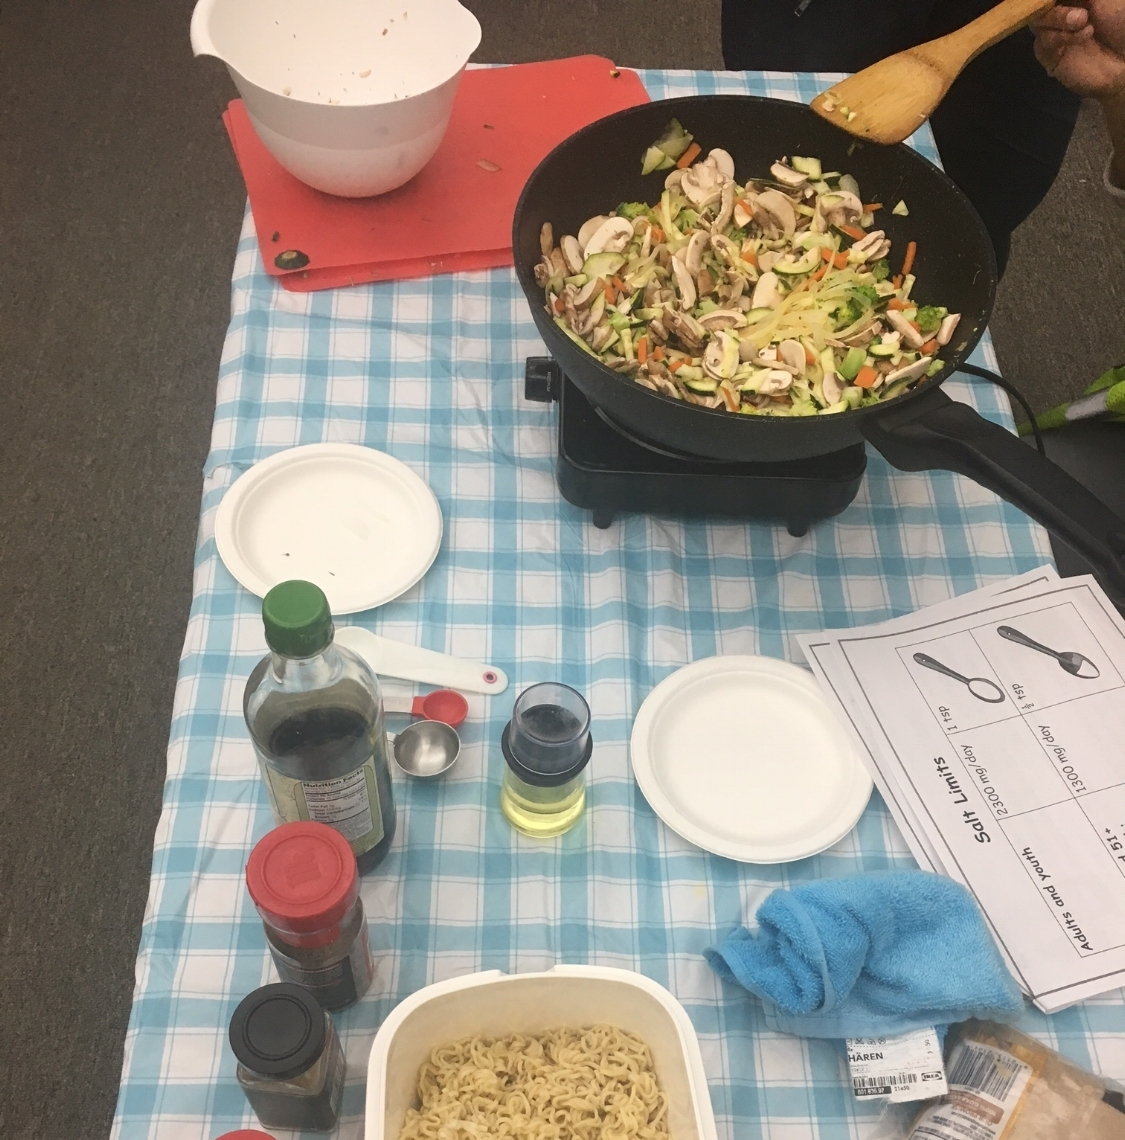 Corpsmembers cook a healthy stir-fry.